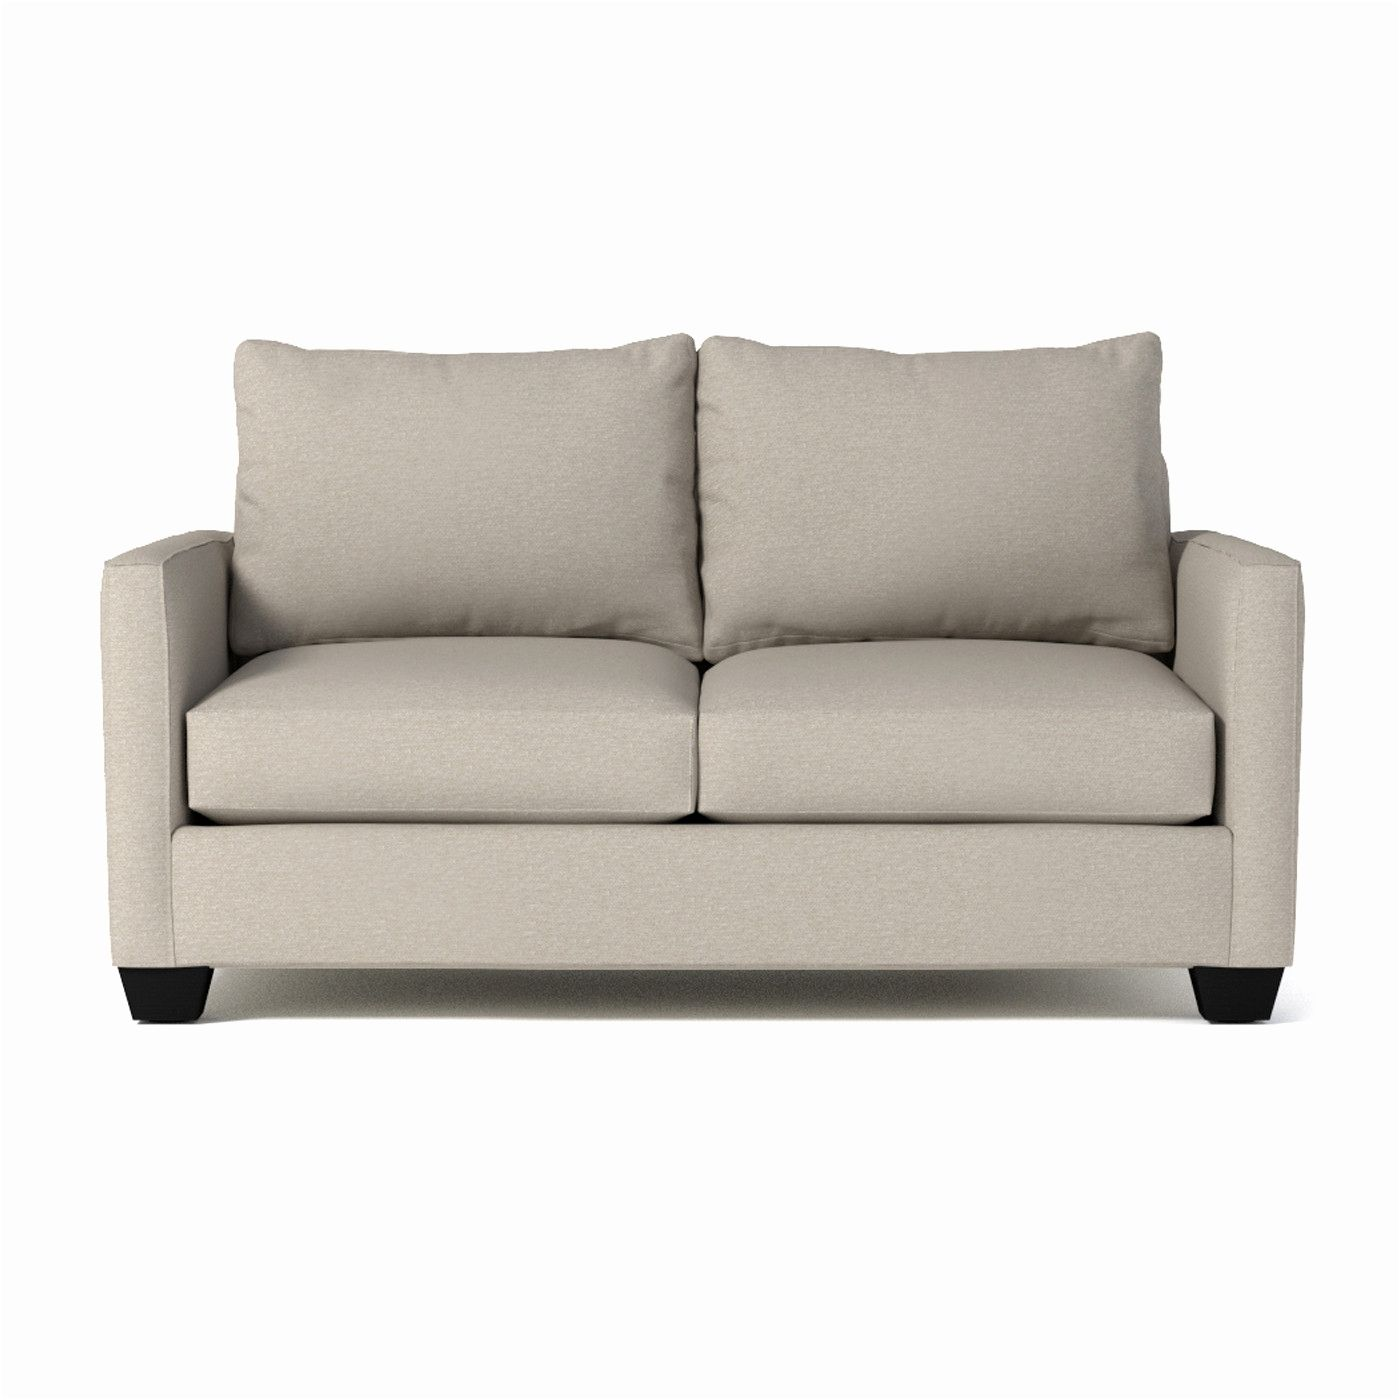 Apartment Therapy Top 10 Sleeper Sofas httptmidbcom